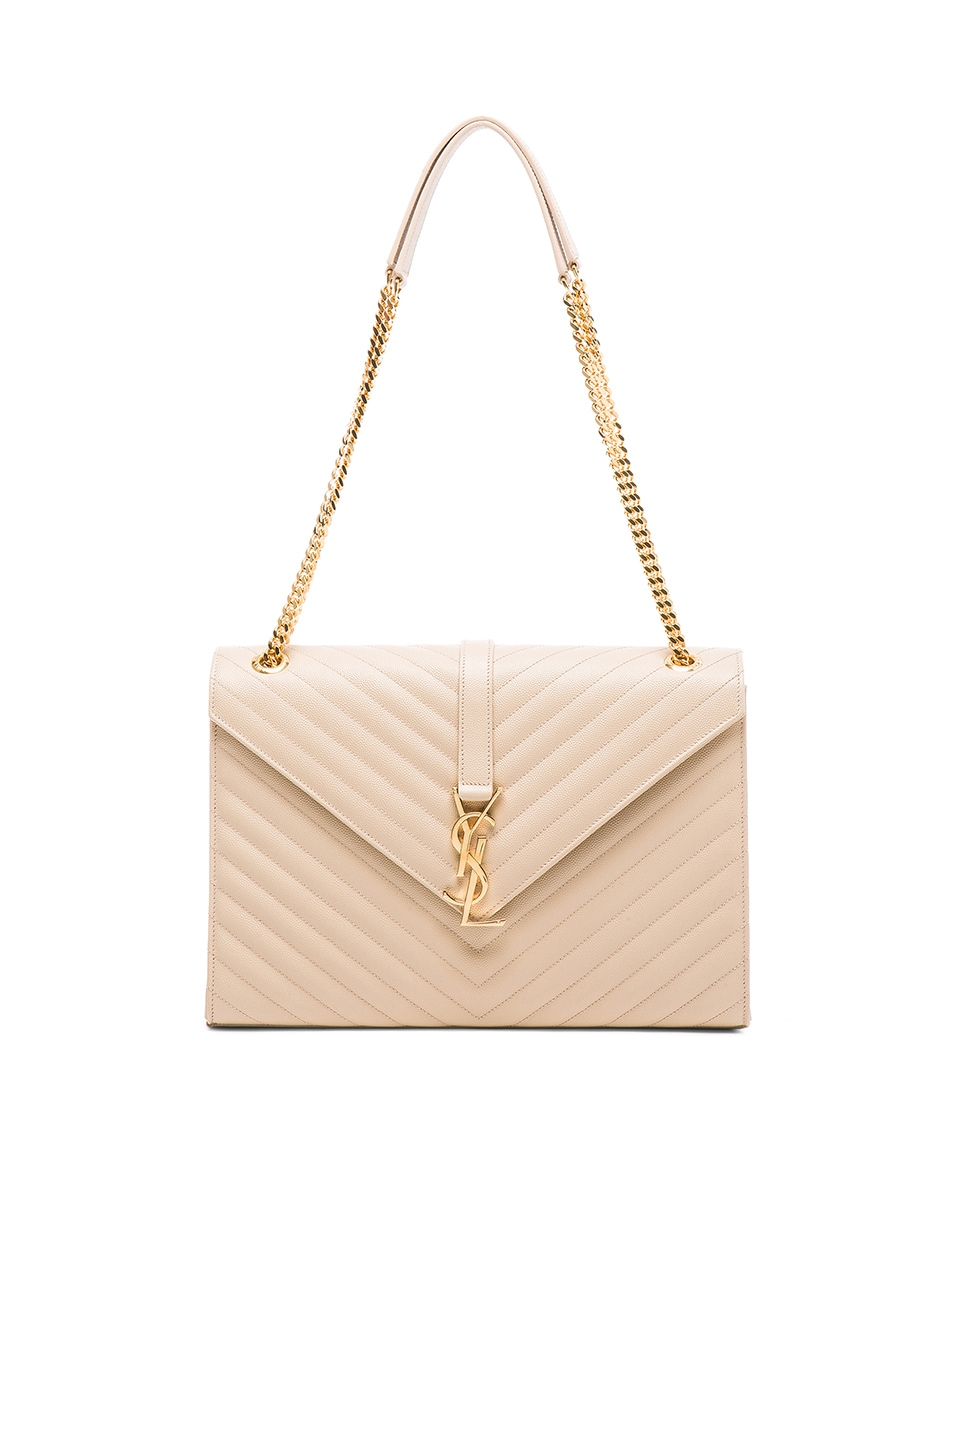 Image 1 of Saint Laurent Large Monogram Envelope Chain Bag in Poudre